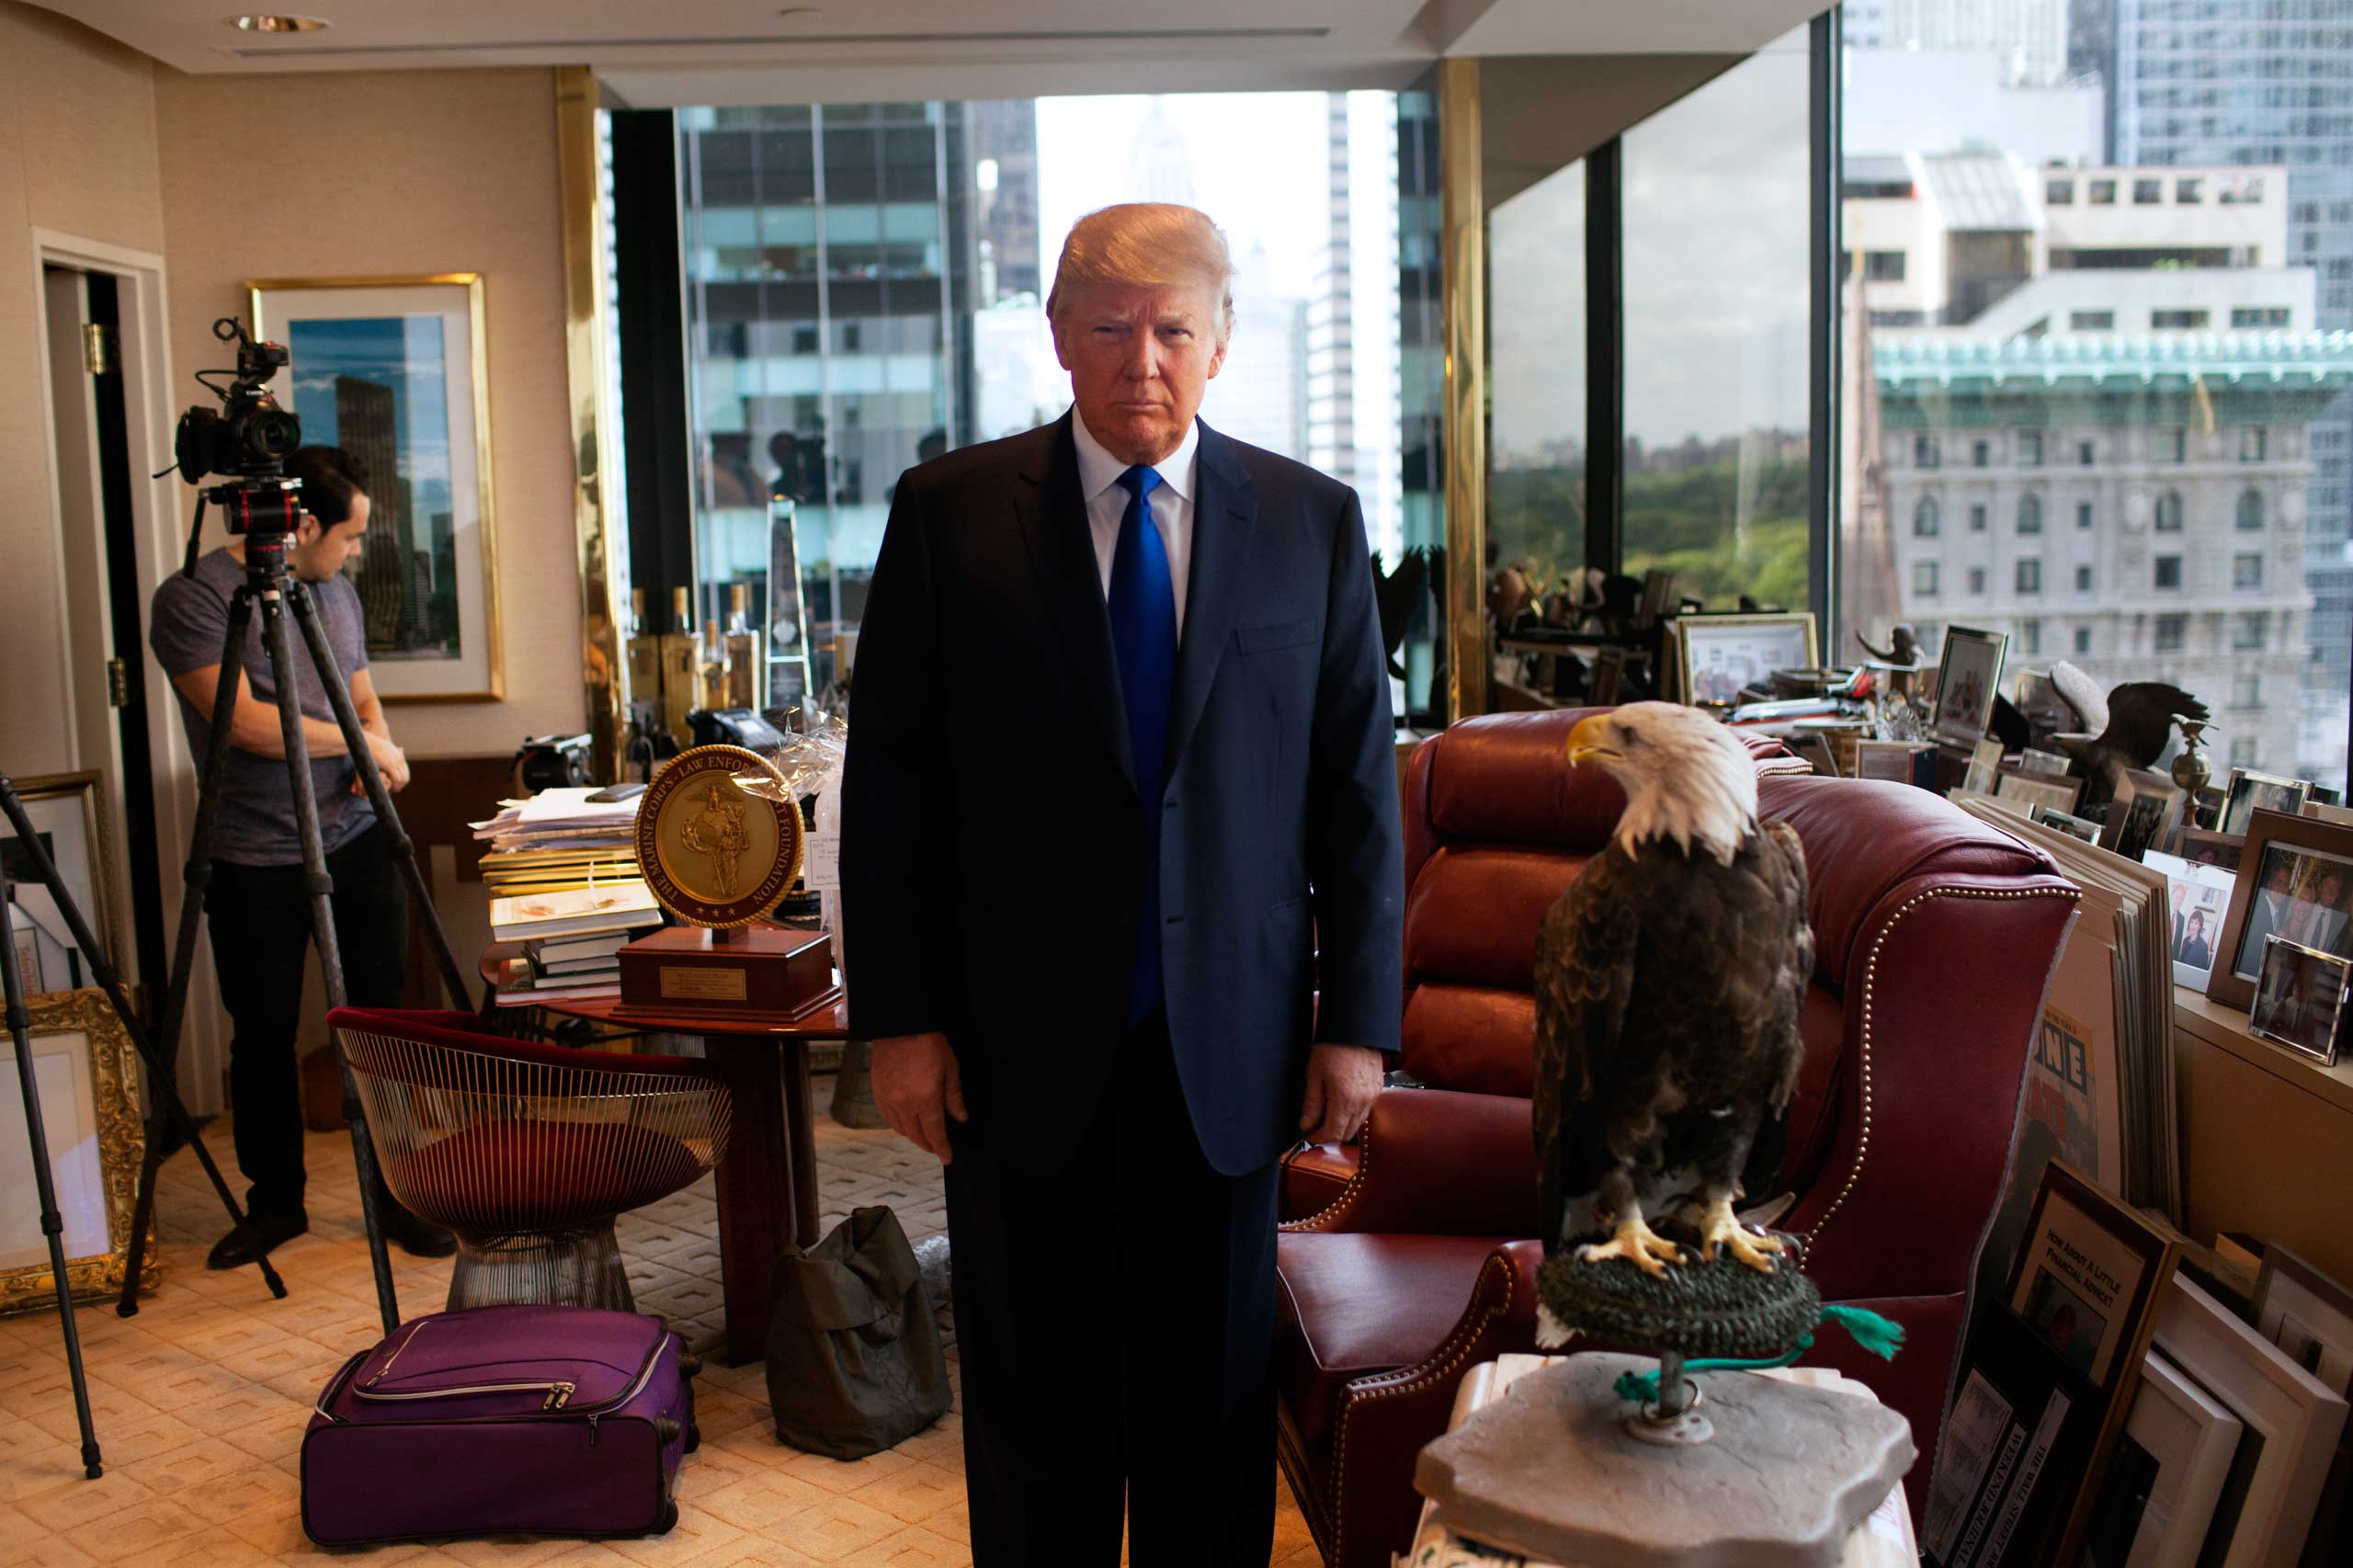 Donald Trump poses with Uncle Sam, an American bald eagle, in his office in New York City.